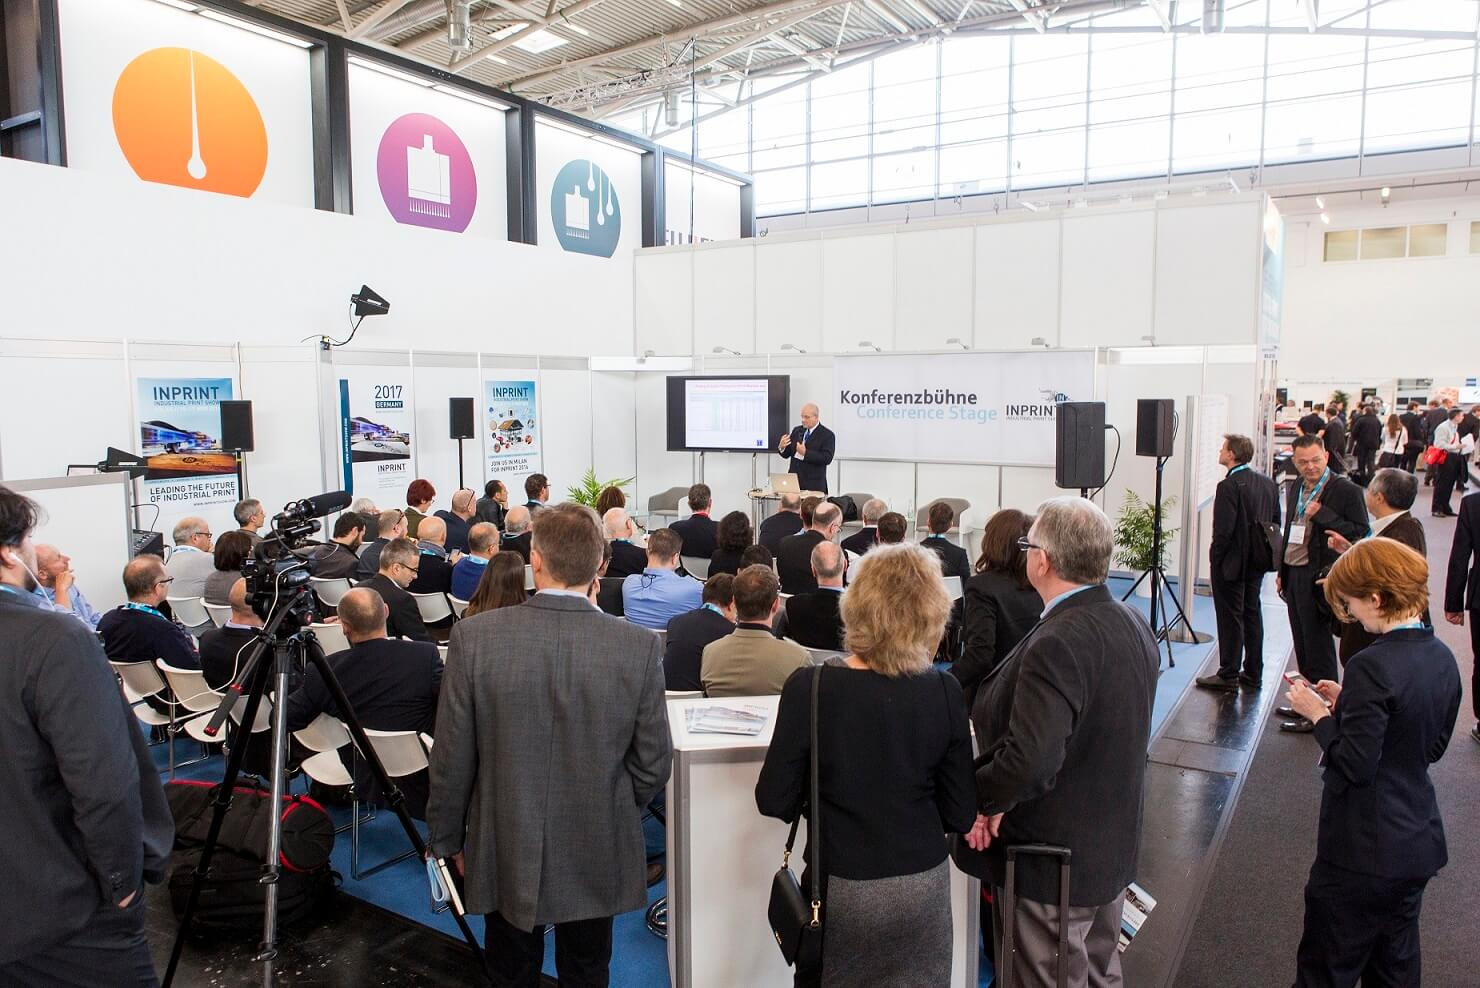 InPrint Show has successfully established itself as a unique and leading exhibition